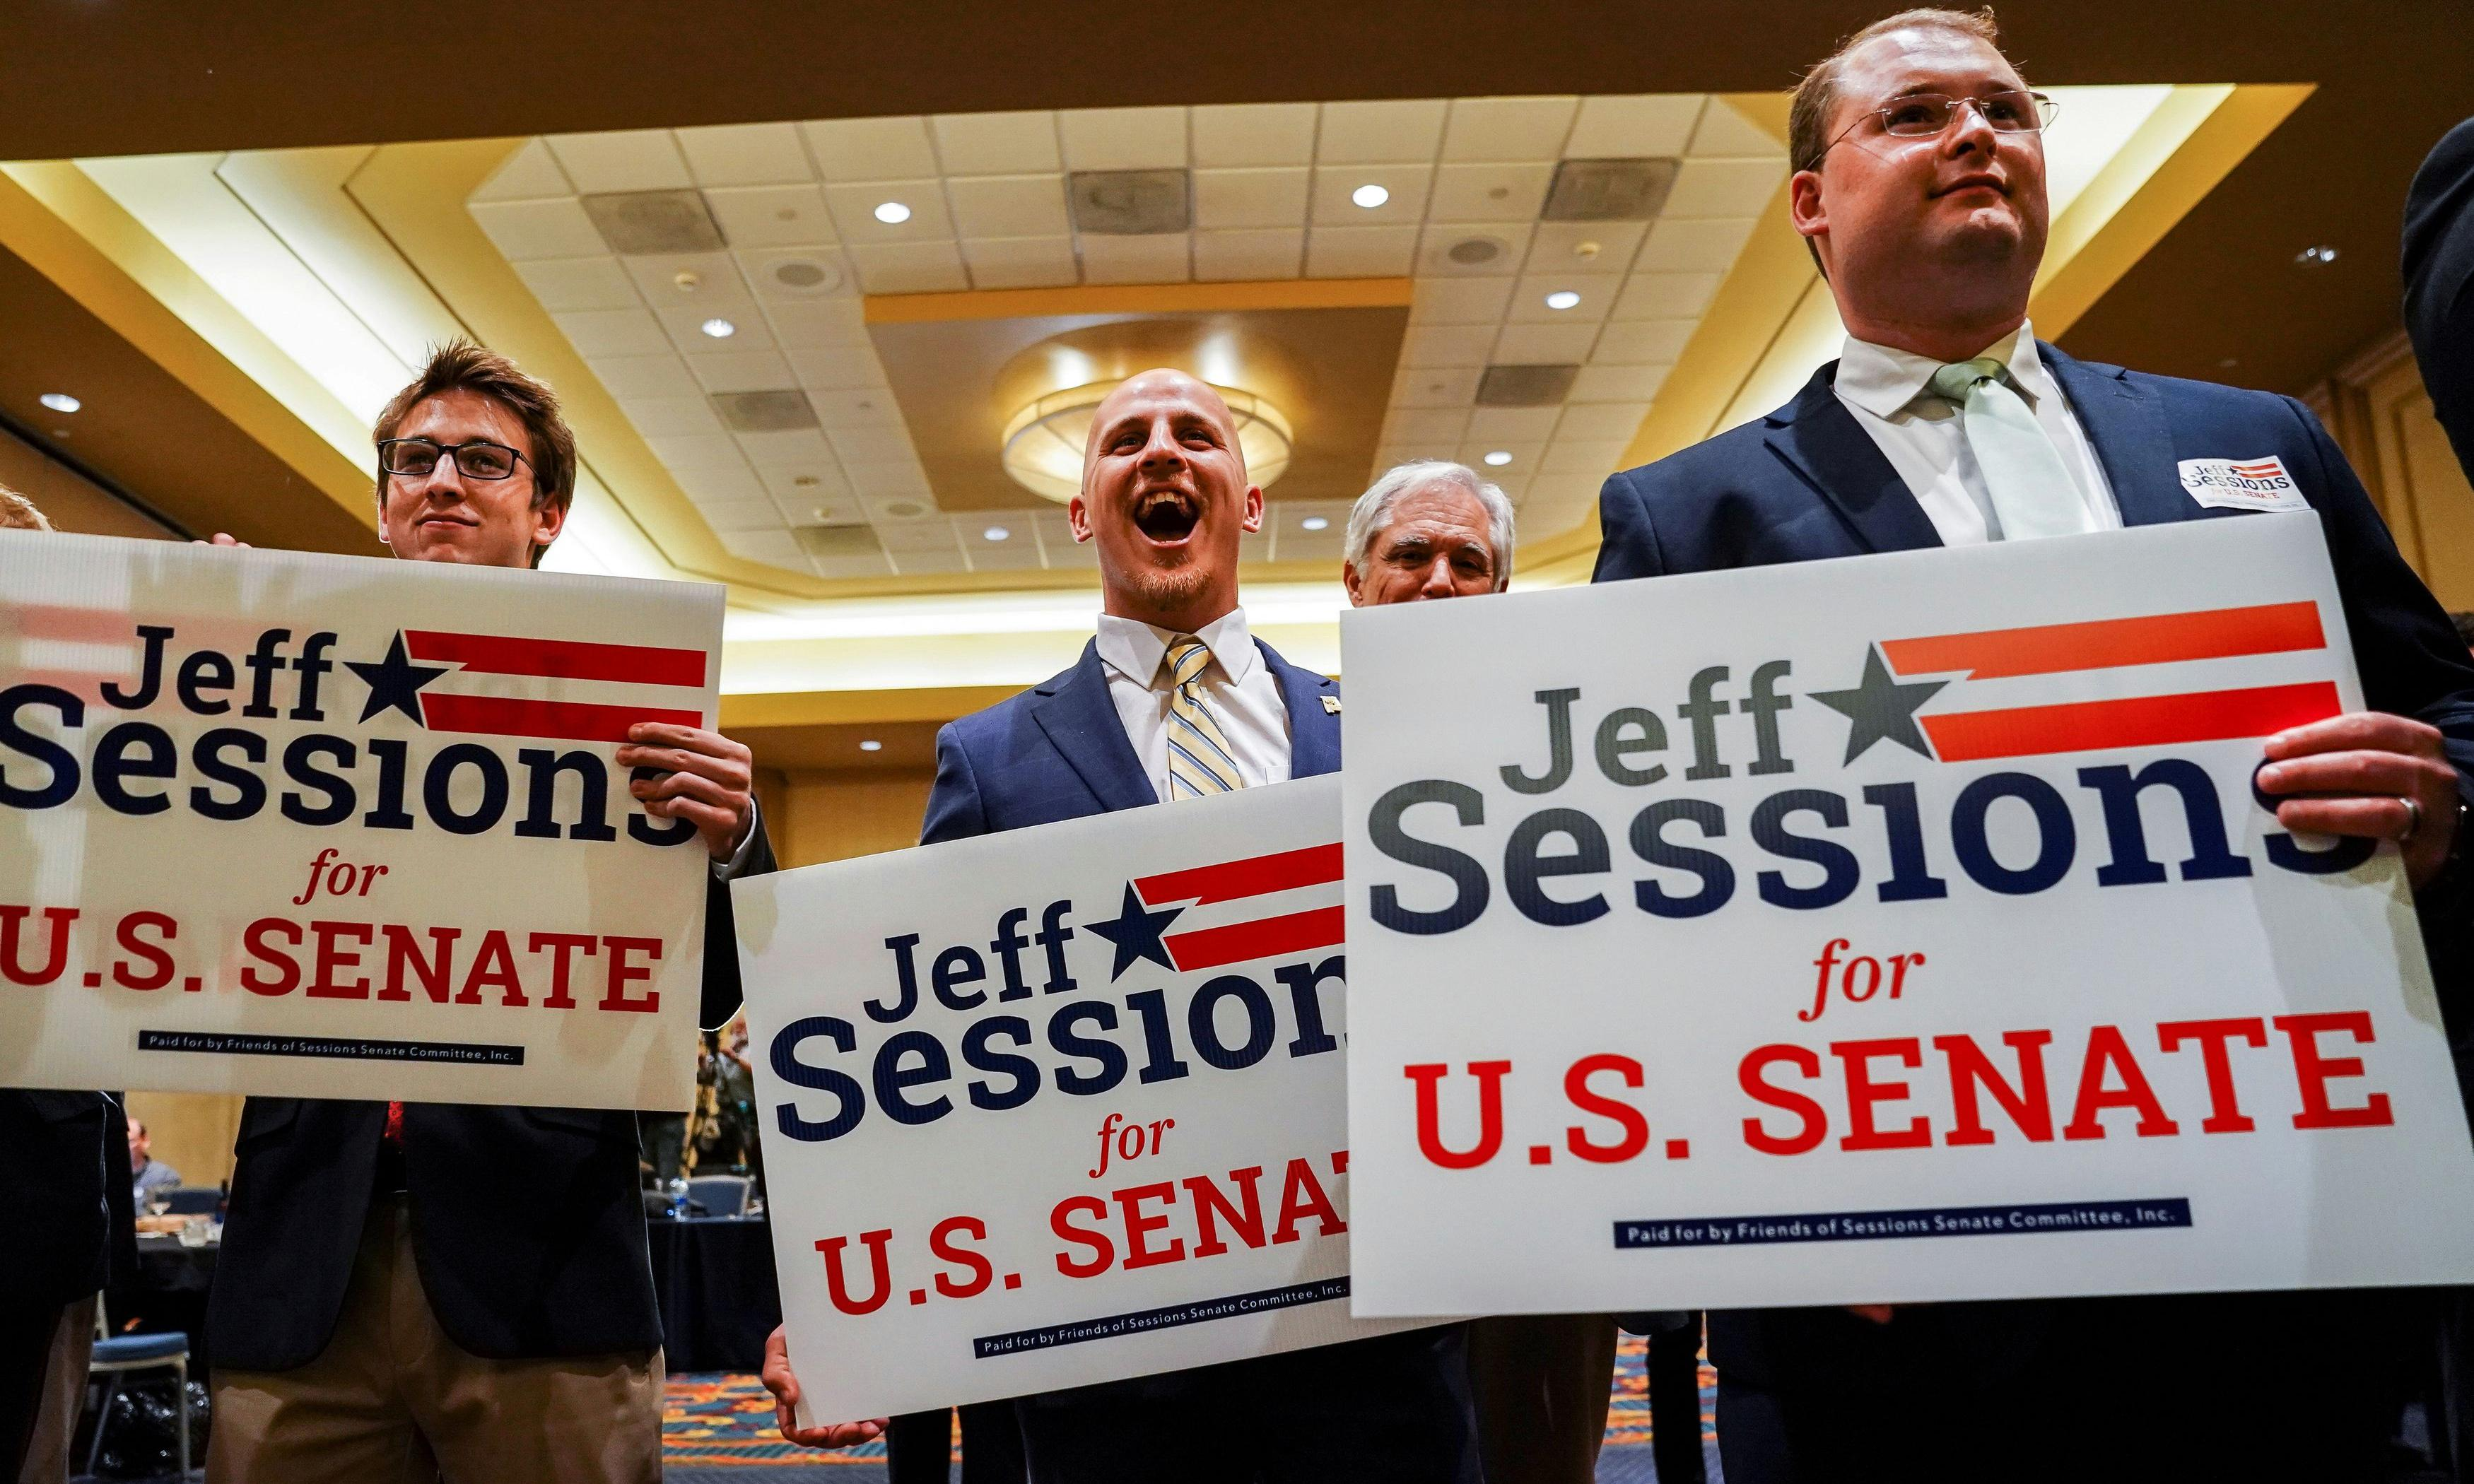 Jeff Sessions' run-off and a Bush's loss: Super Tuesday races you may have missed